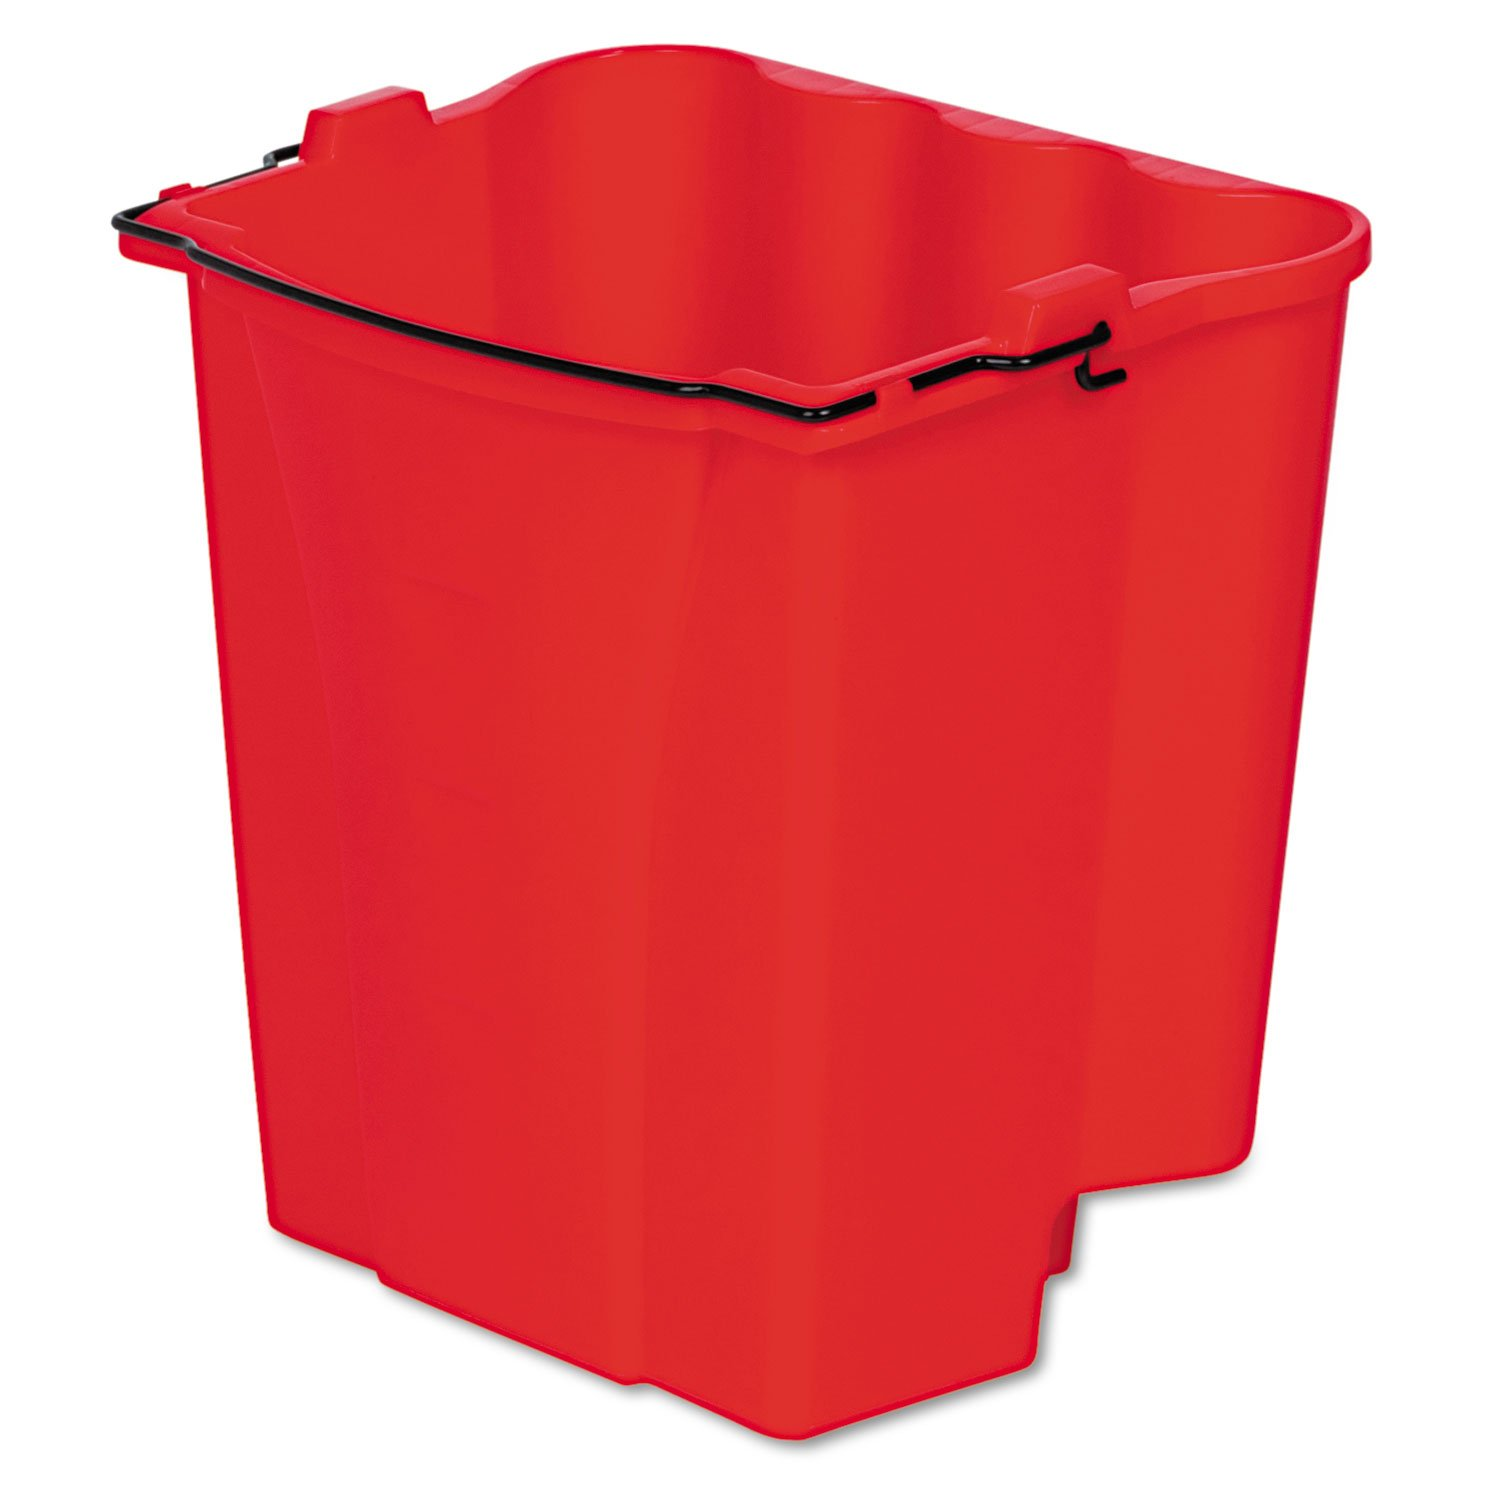 Rubbermaid Commercial 9C74RED Dirty Water Bucket for Wavebrake Bucket/Wringer, 18qt, Red